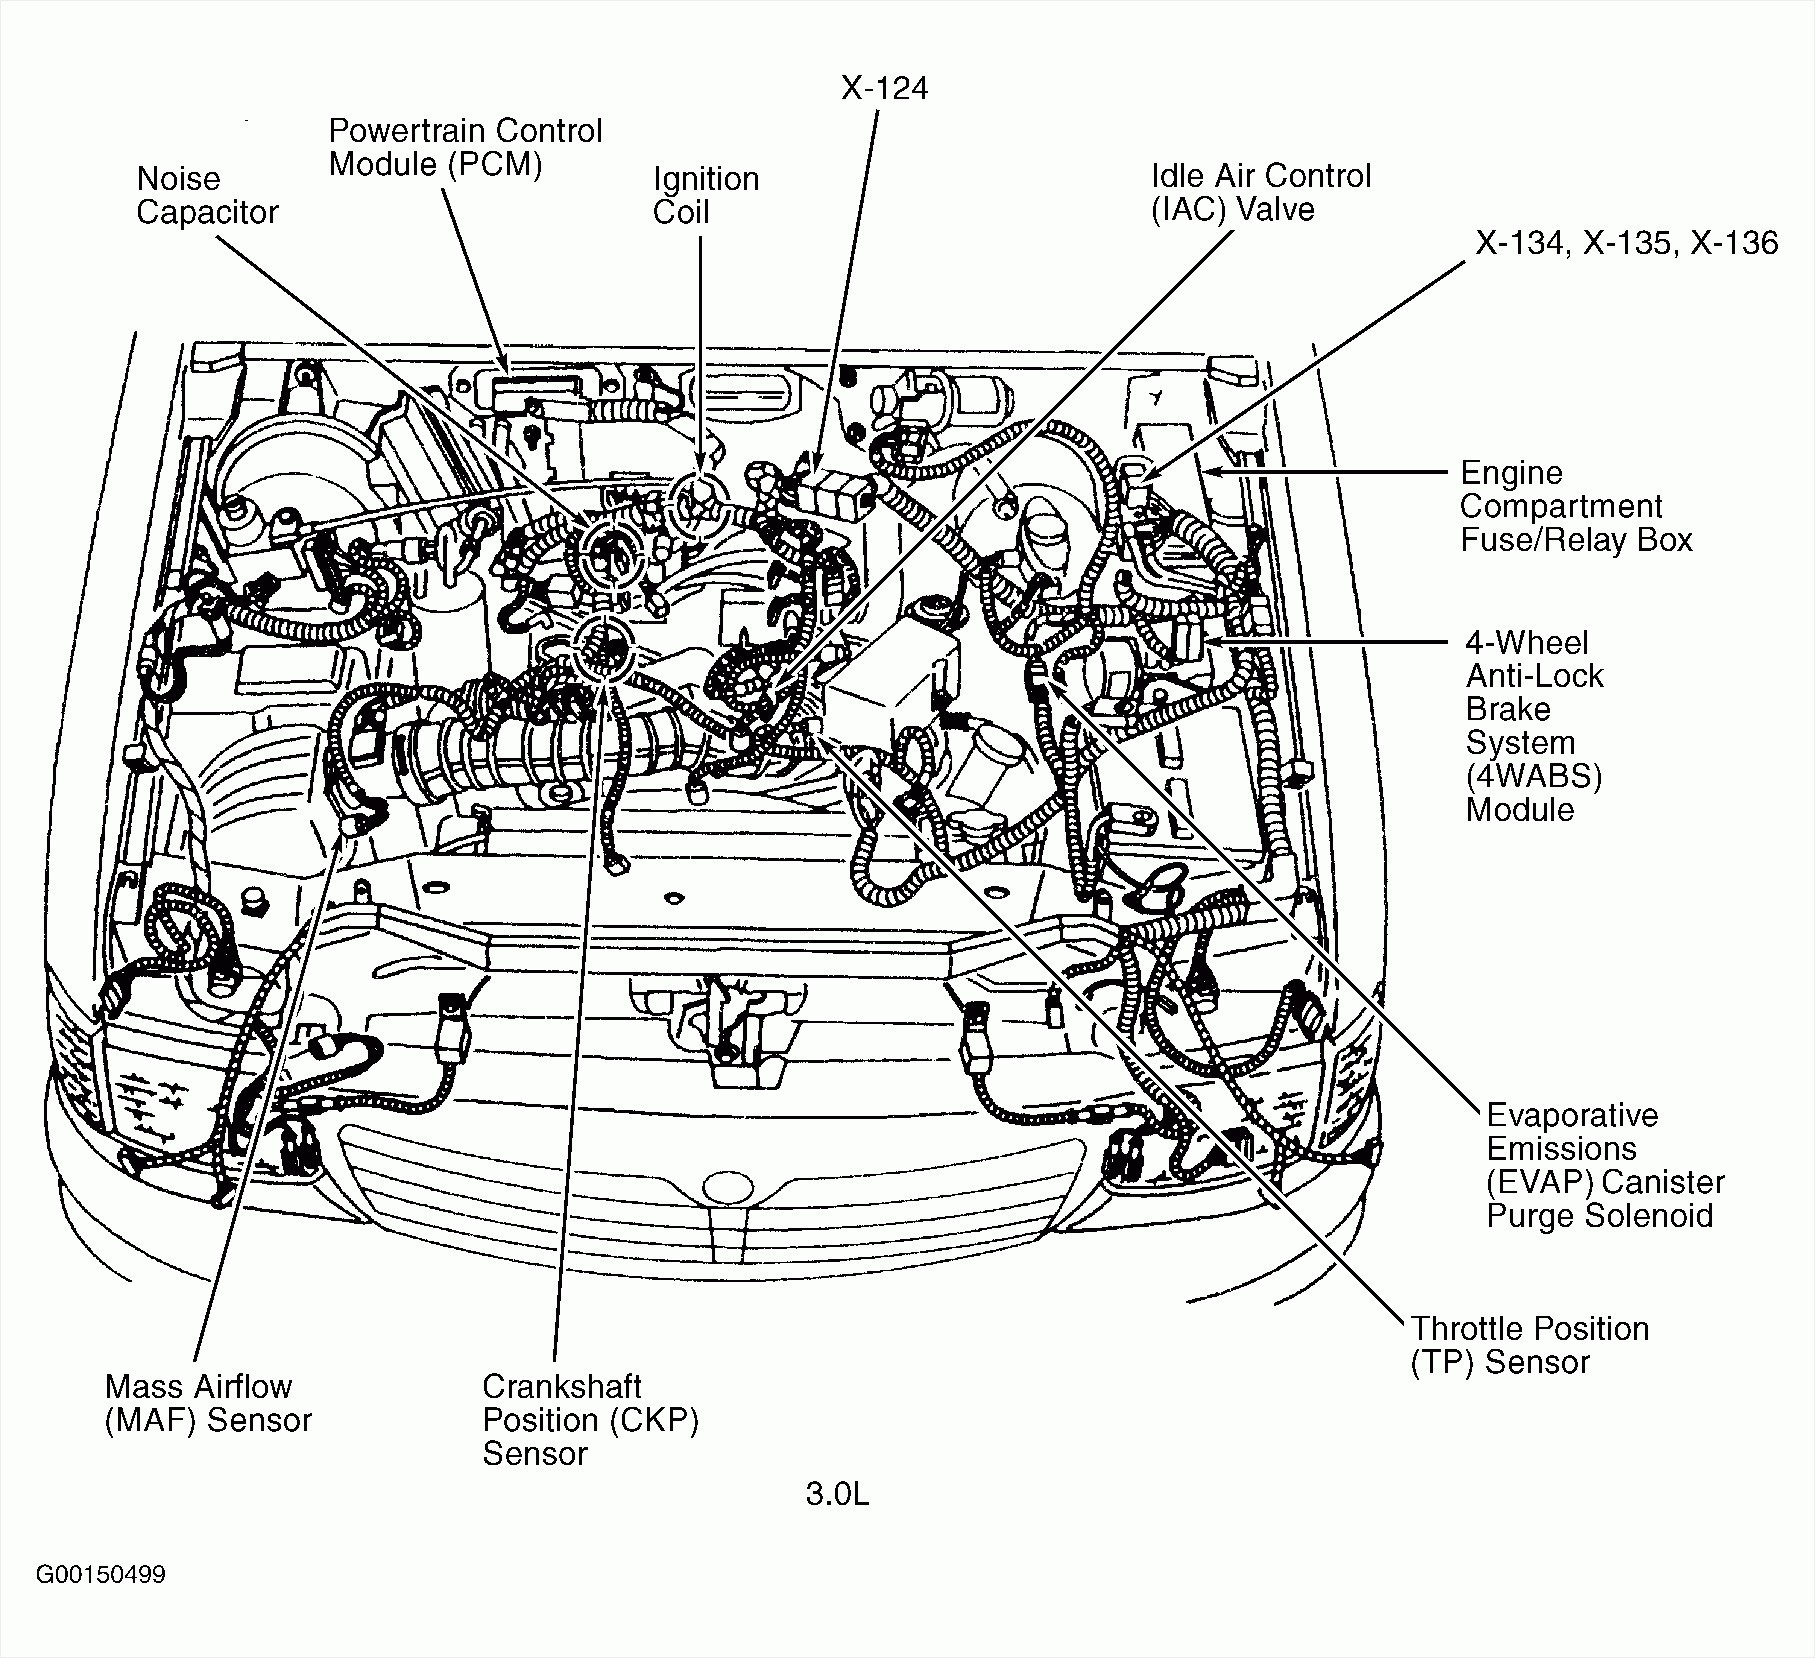 hight resolution of 1996 toyota camry v6 engine diagram wiring diagram name 1996 toyota camry engine diagram